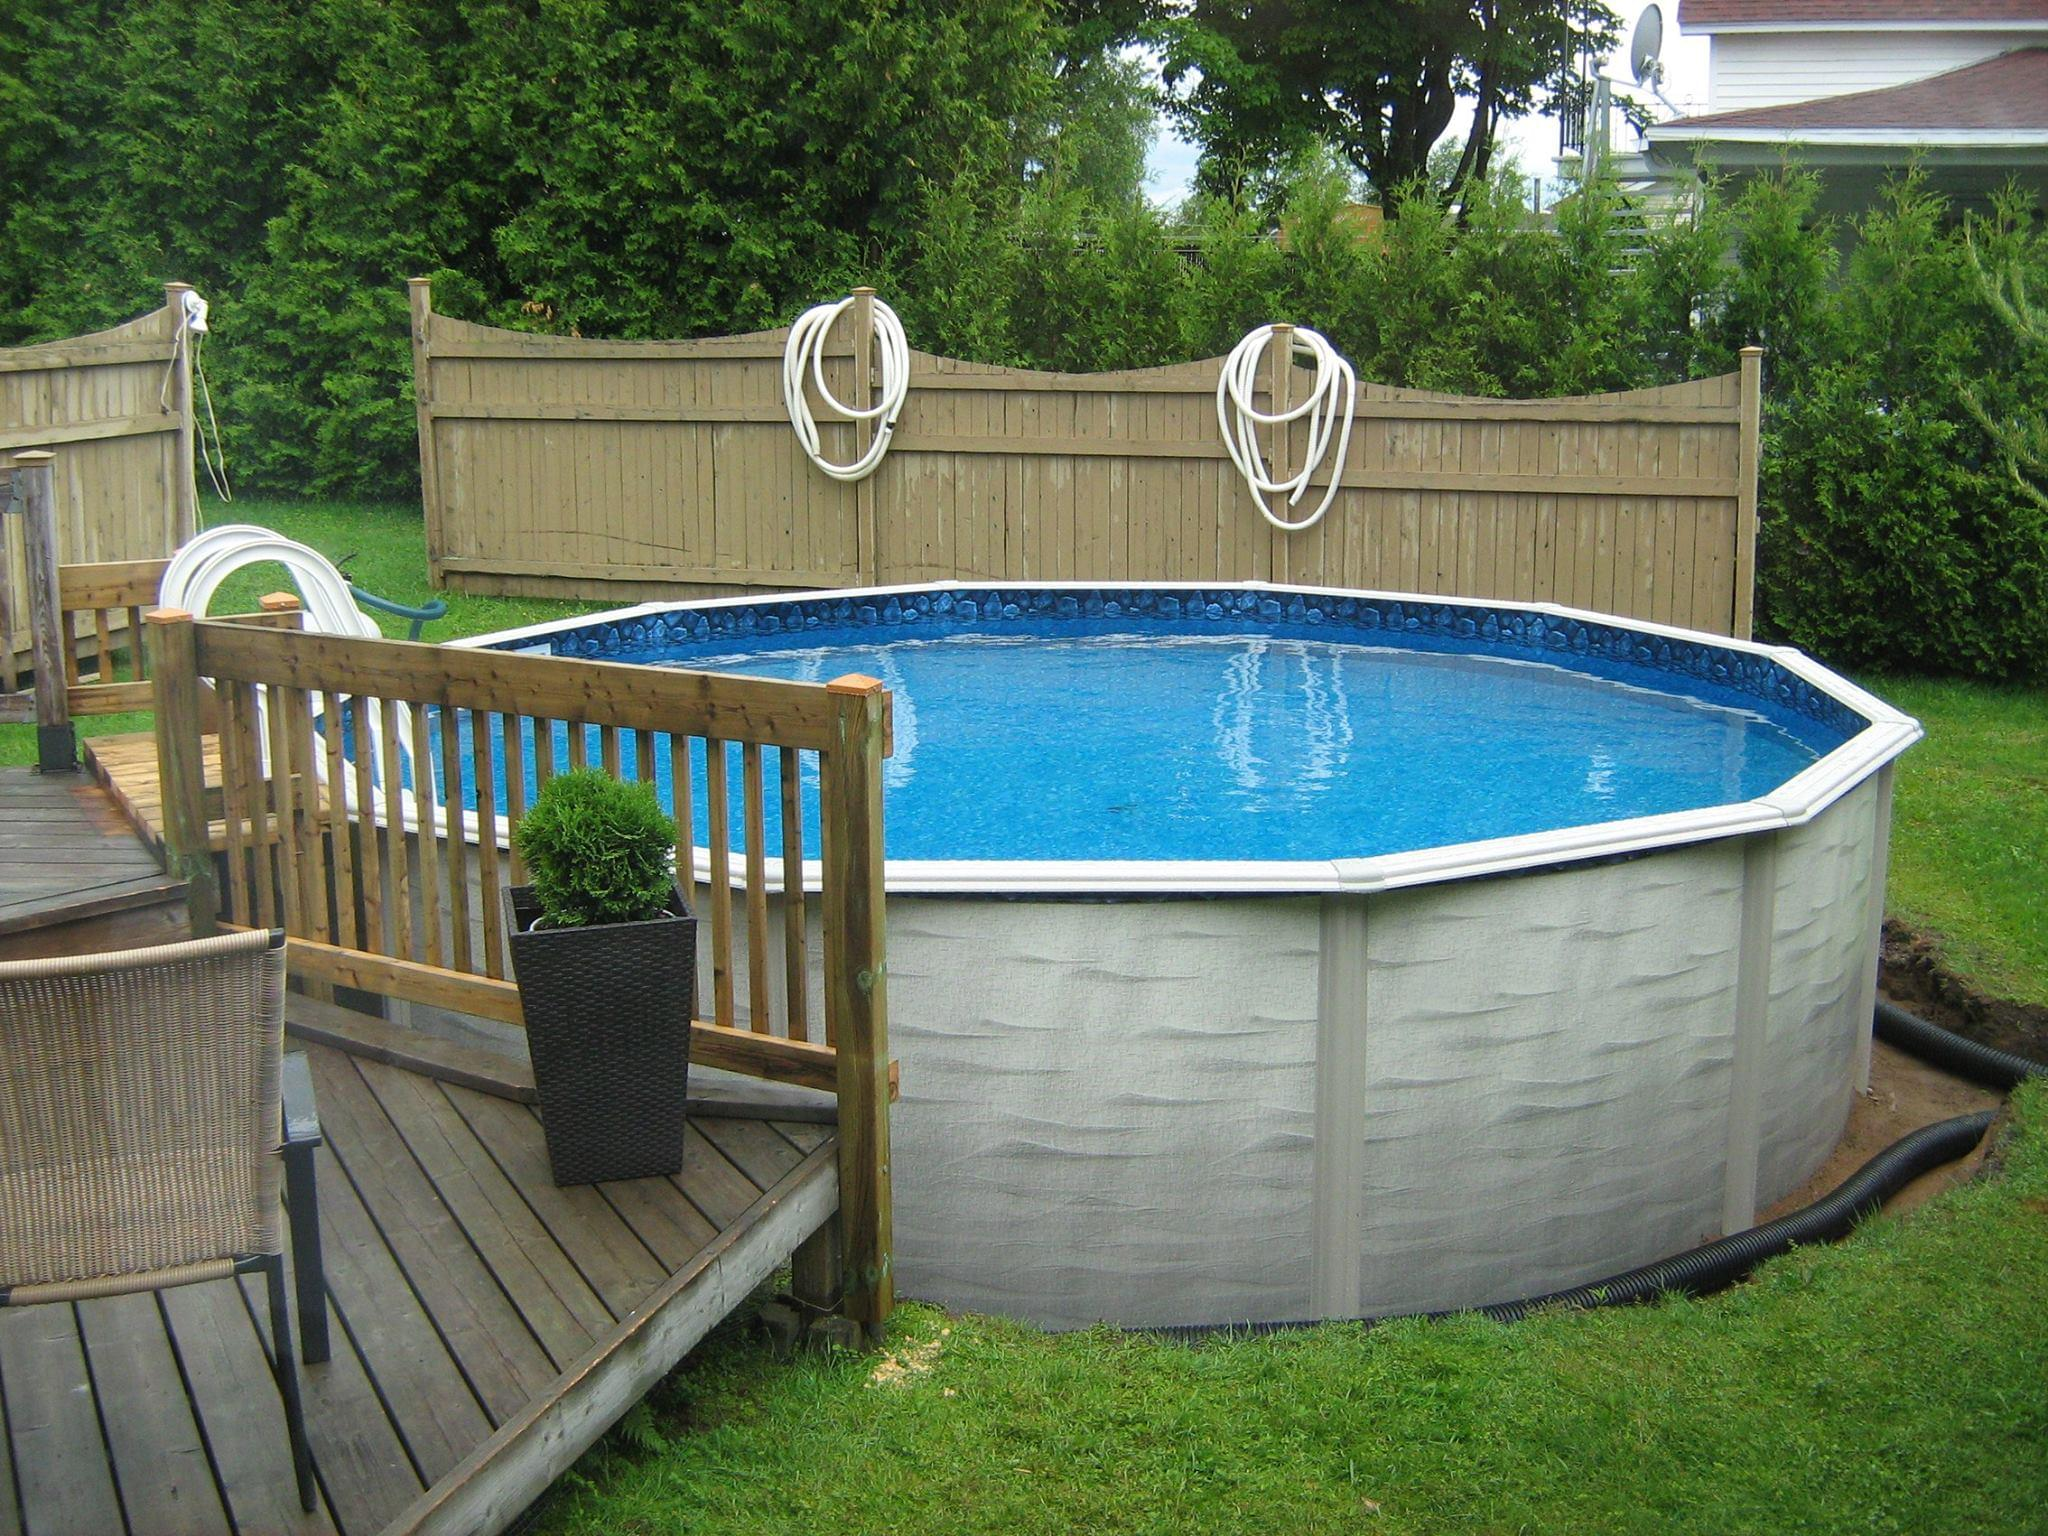 Above ground pools pool supplies canada - How to build an above ground swimming pool ...